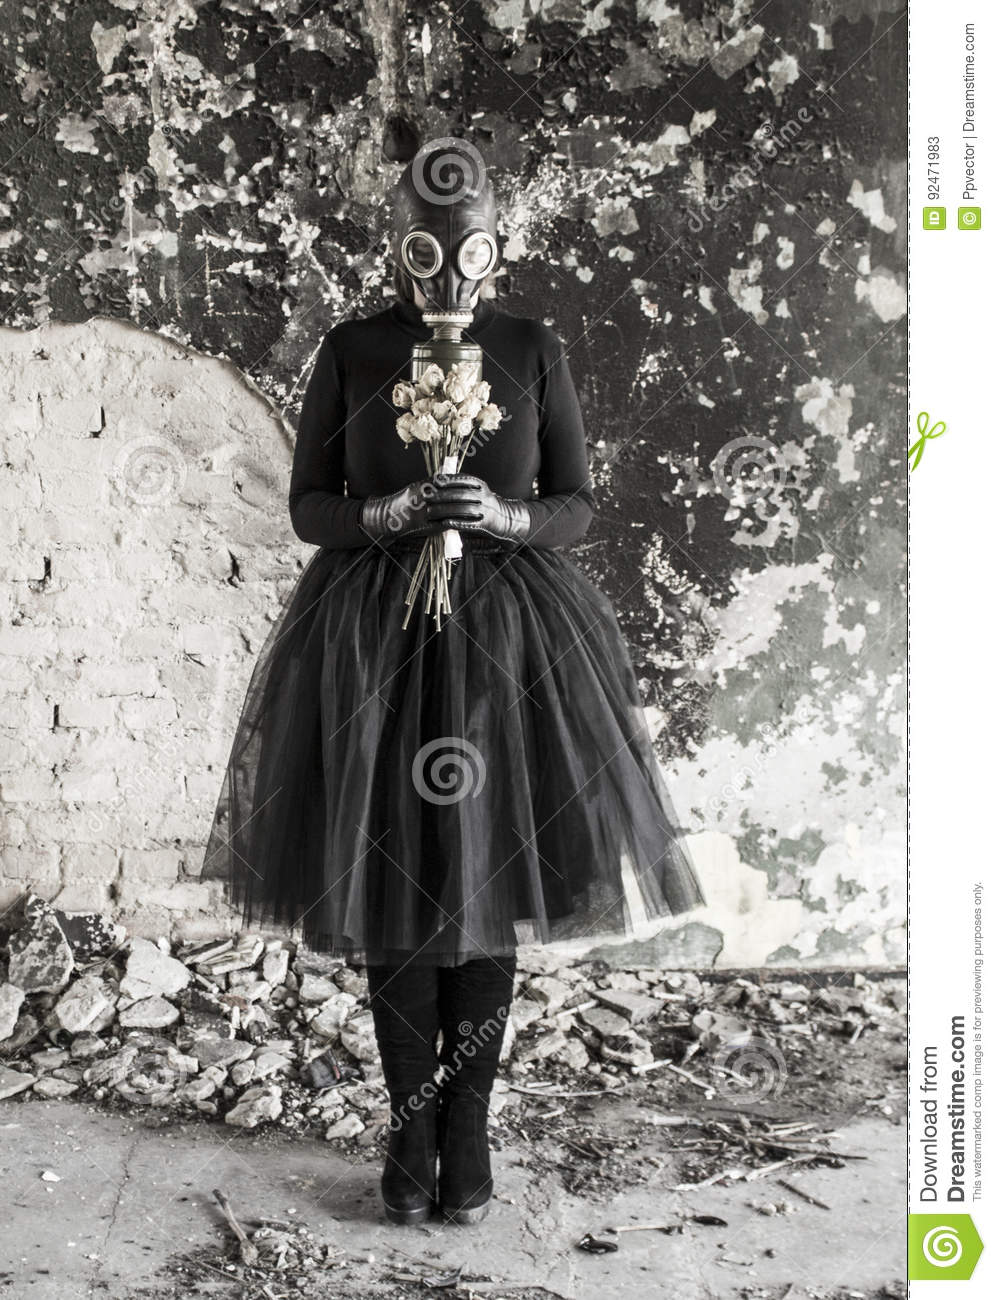 The girl in a gas mask. The threat of ecology.